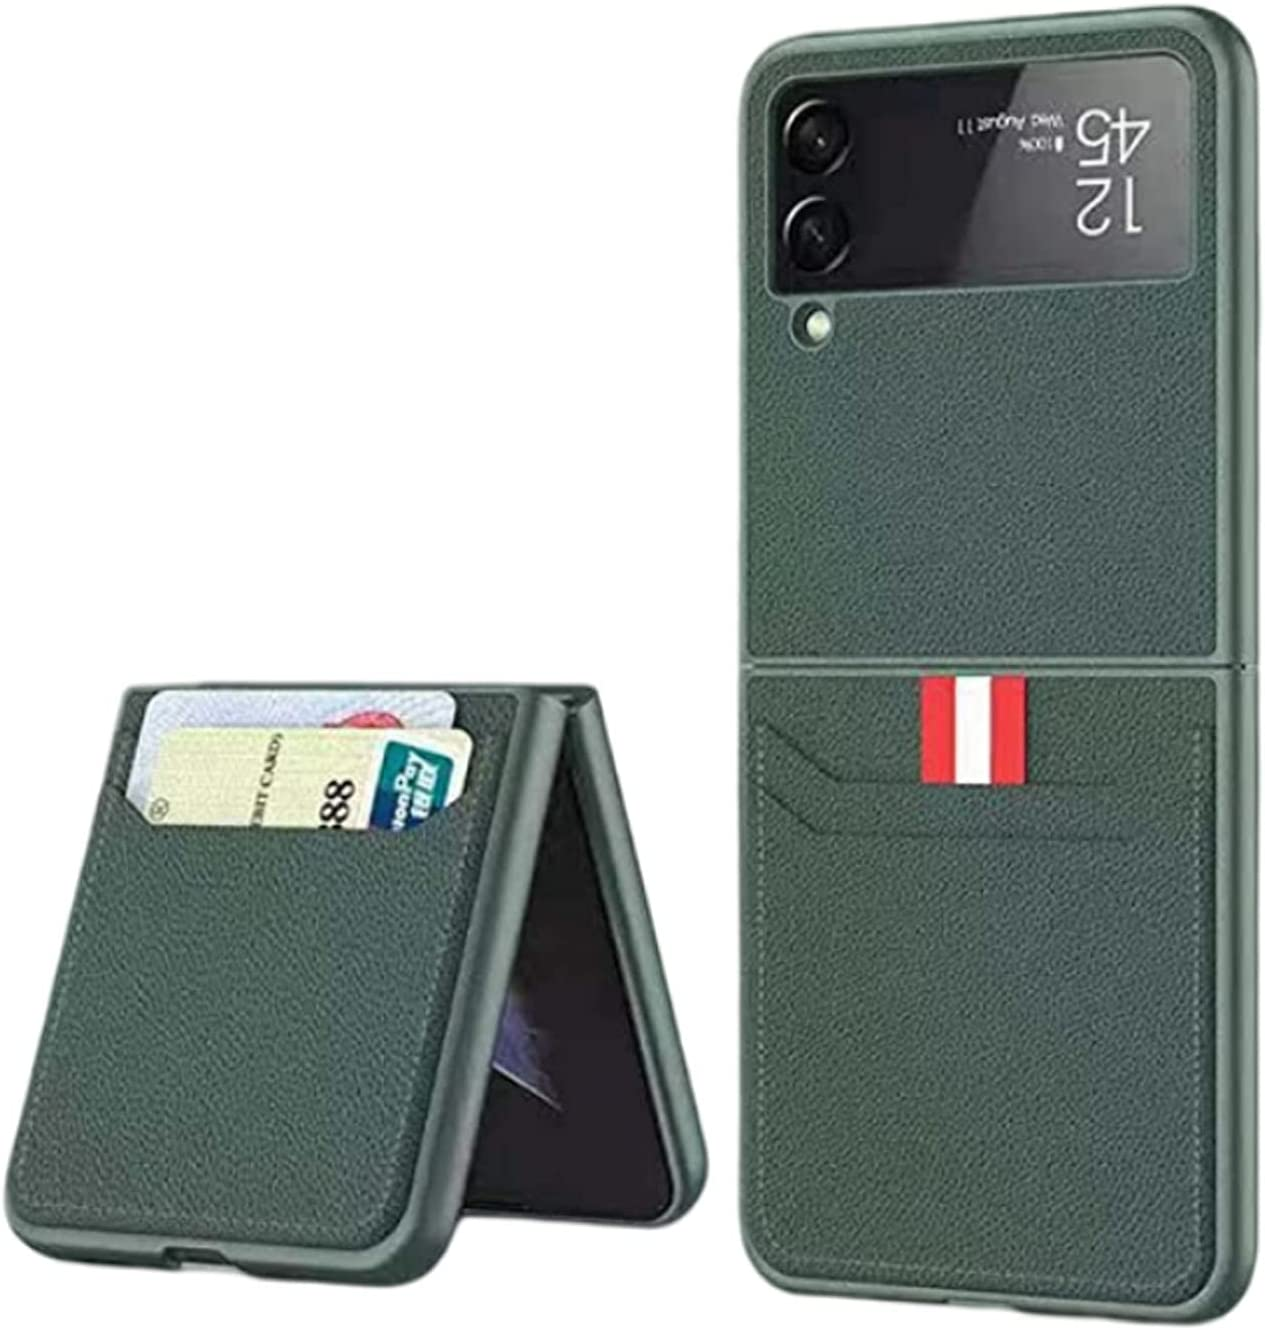 for Samsung Galaxy Z Flip 3 5G Phone,Slim Cover with Leather Wallet Card Leather Case Compatible with Galaxy Z Flip 3 (Green)